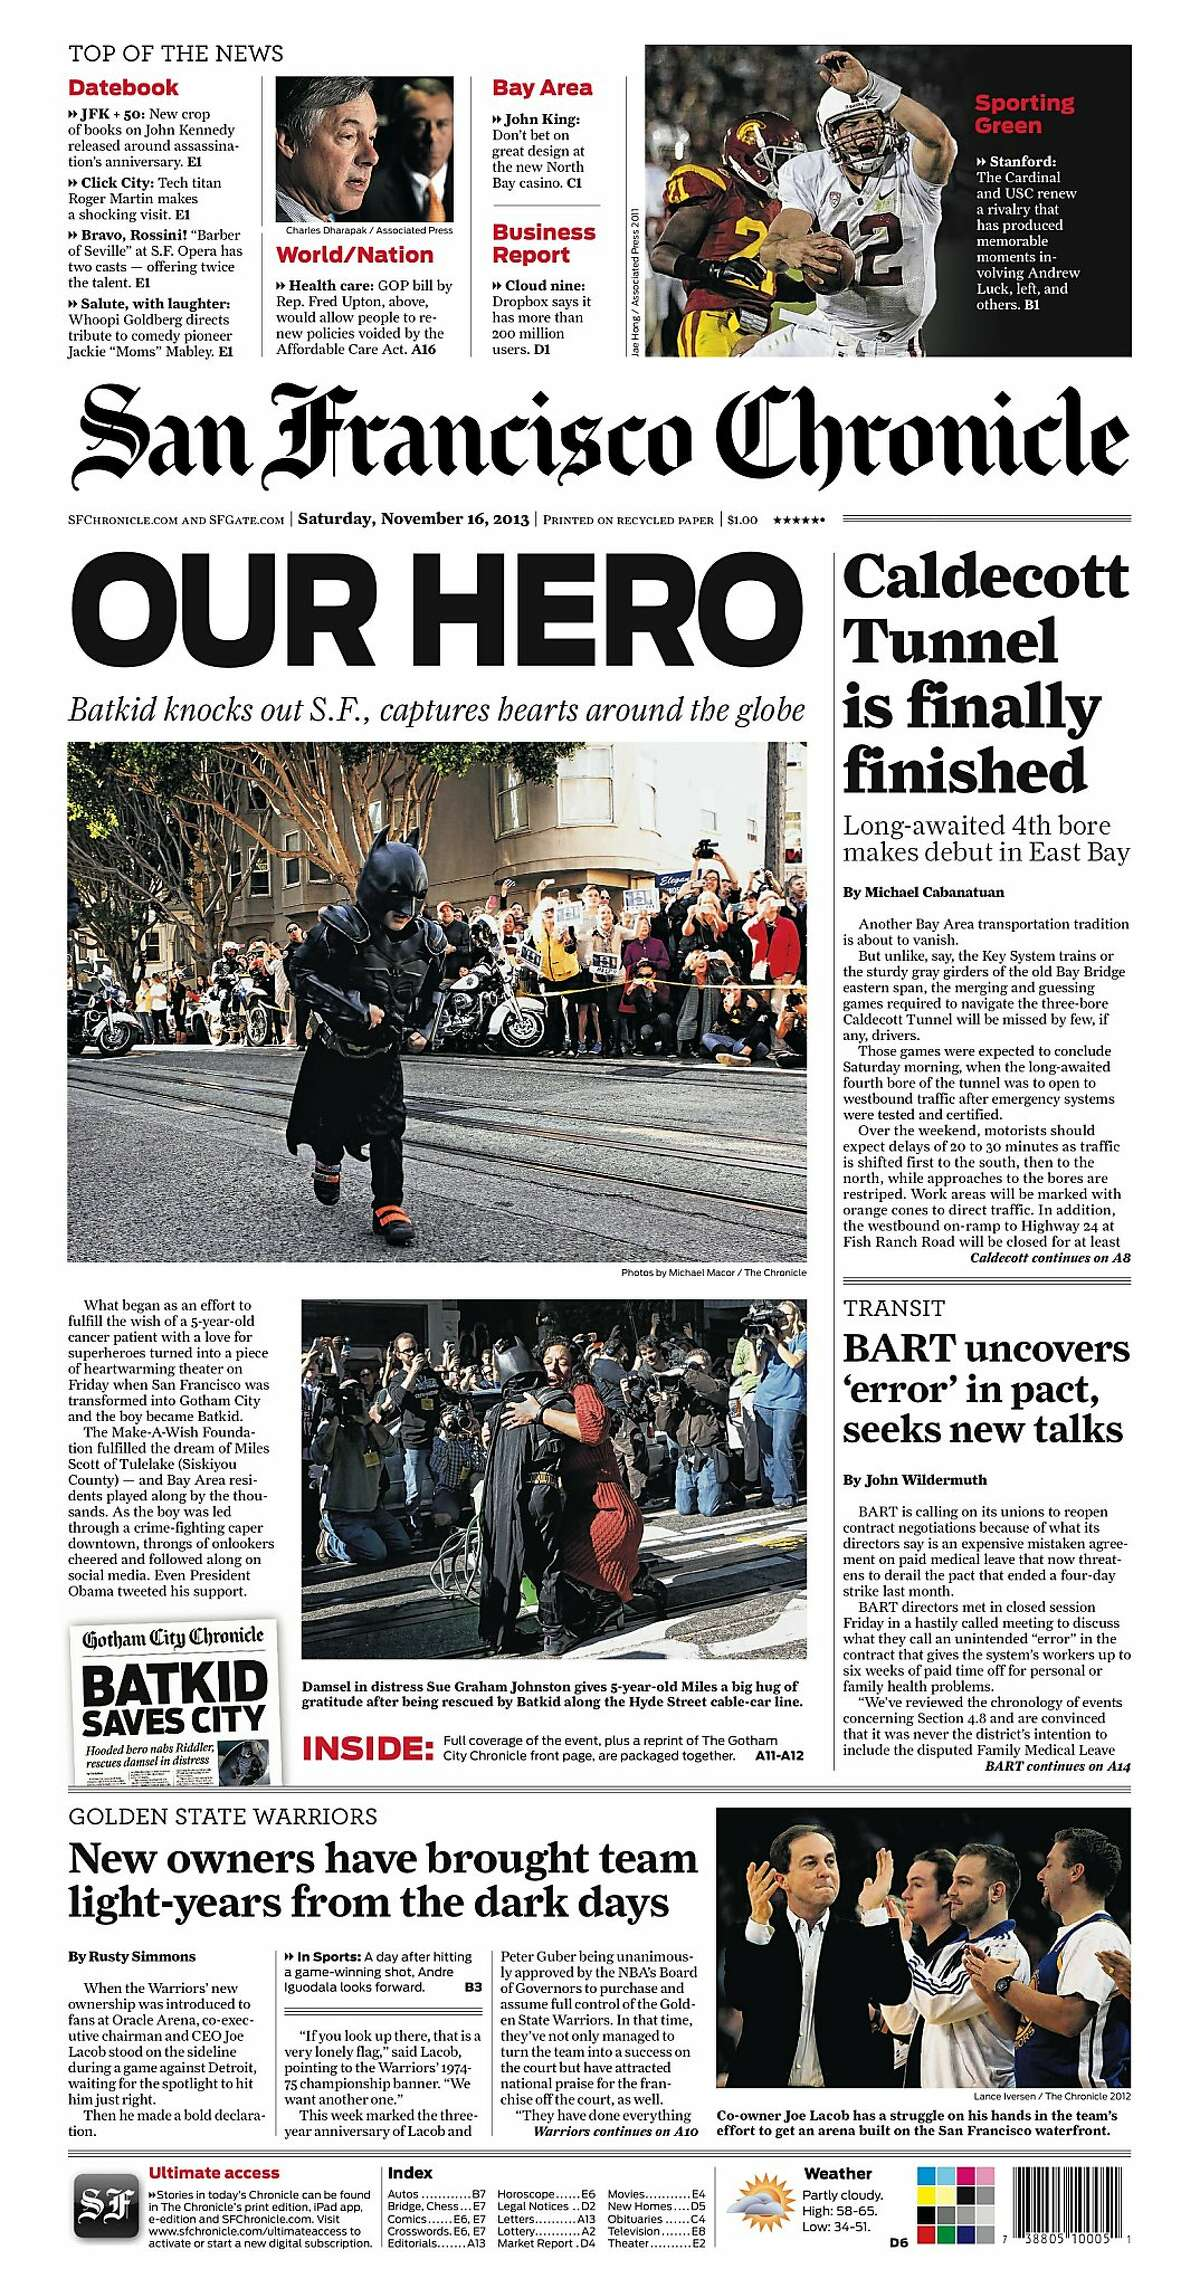 Historic Chronicle Front Page November 16, 2013 The San Francisco Chronicle and the City of San Francisco participate in the Batkid event. A facsimile paper was distributed throughout the city.